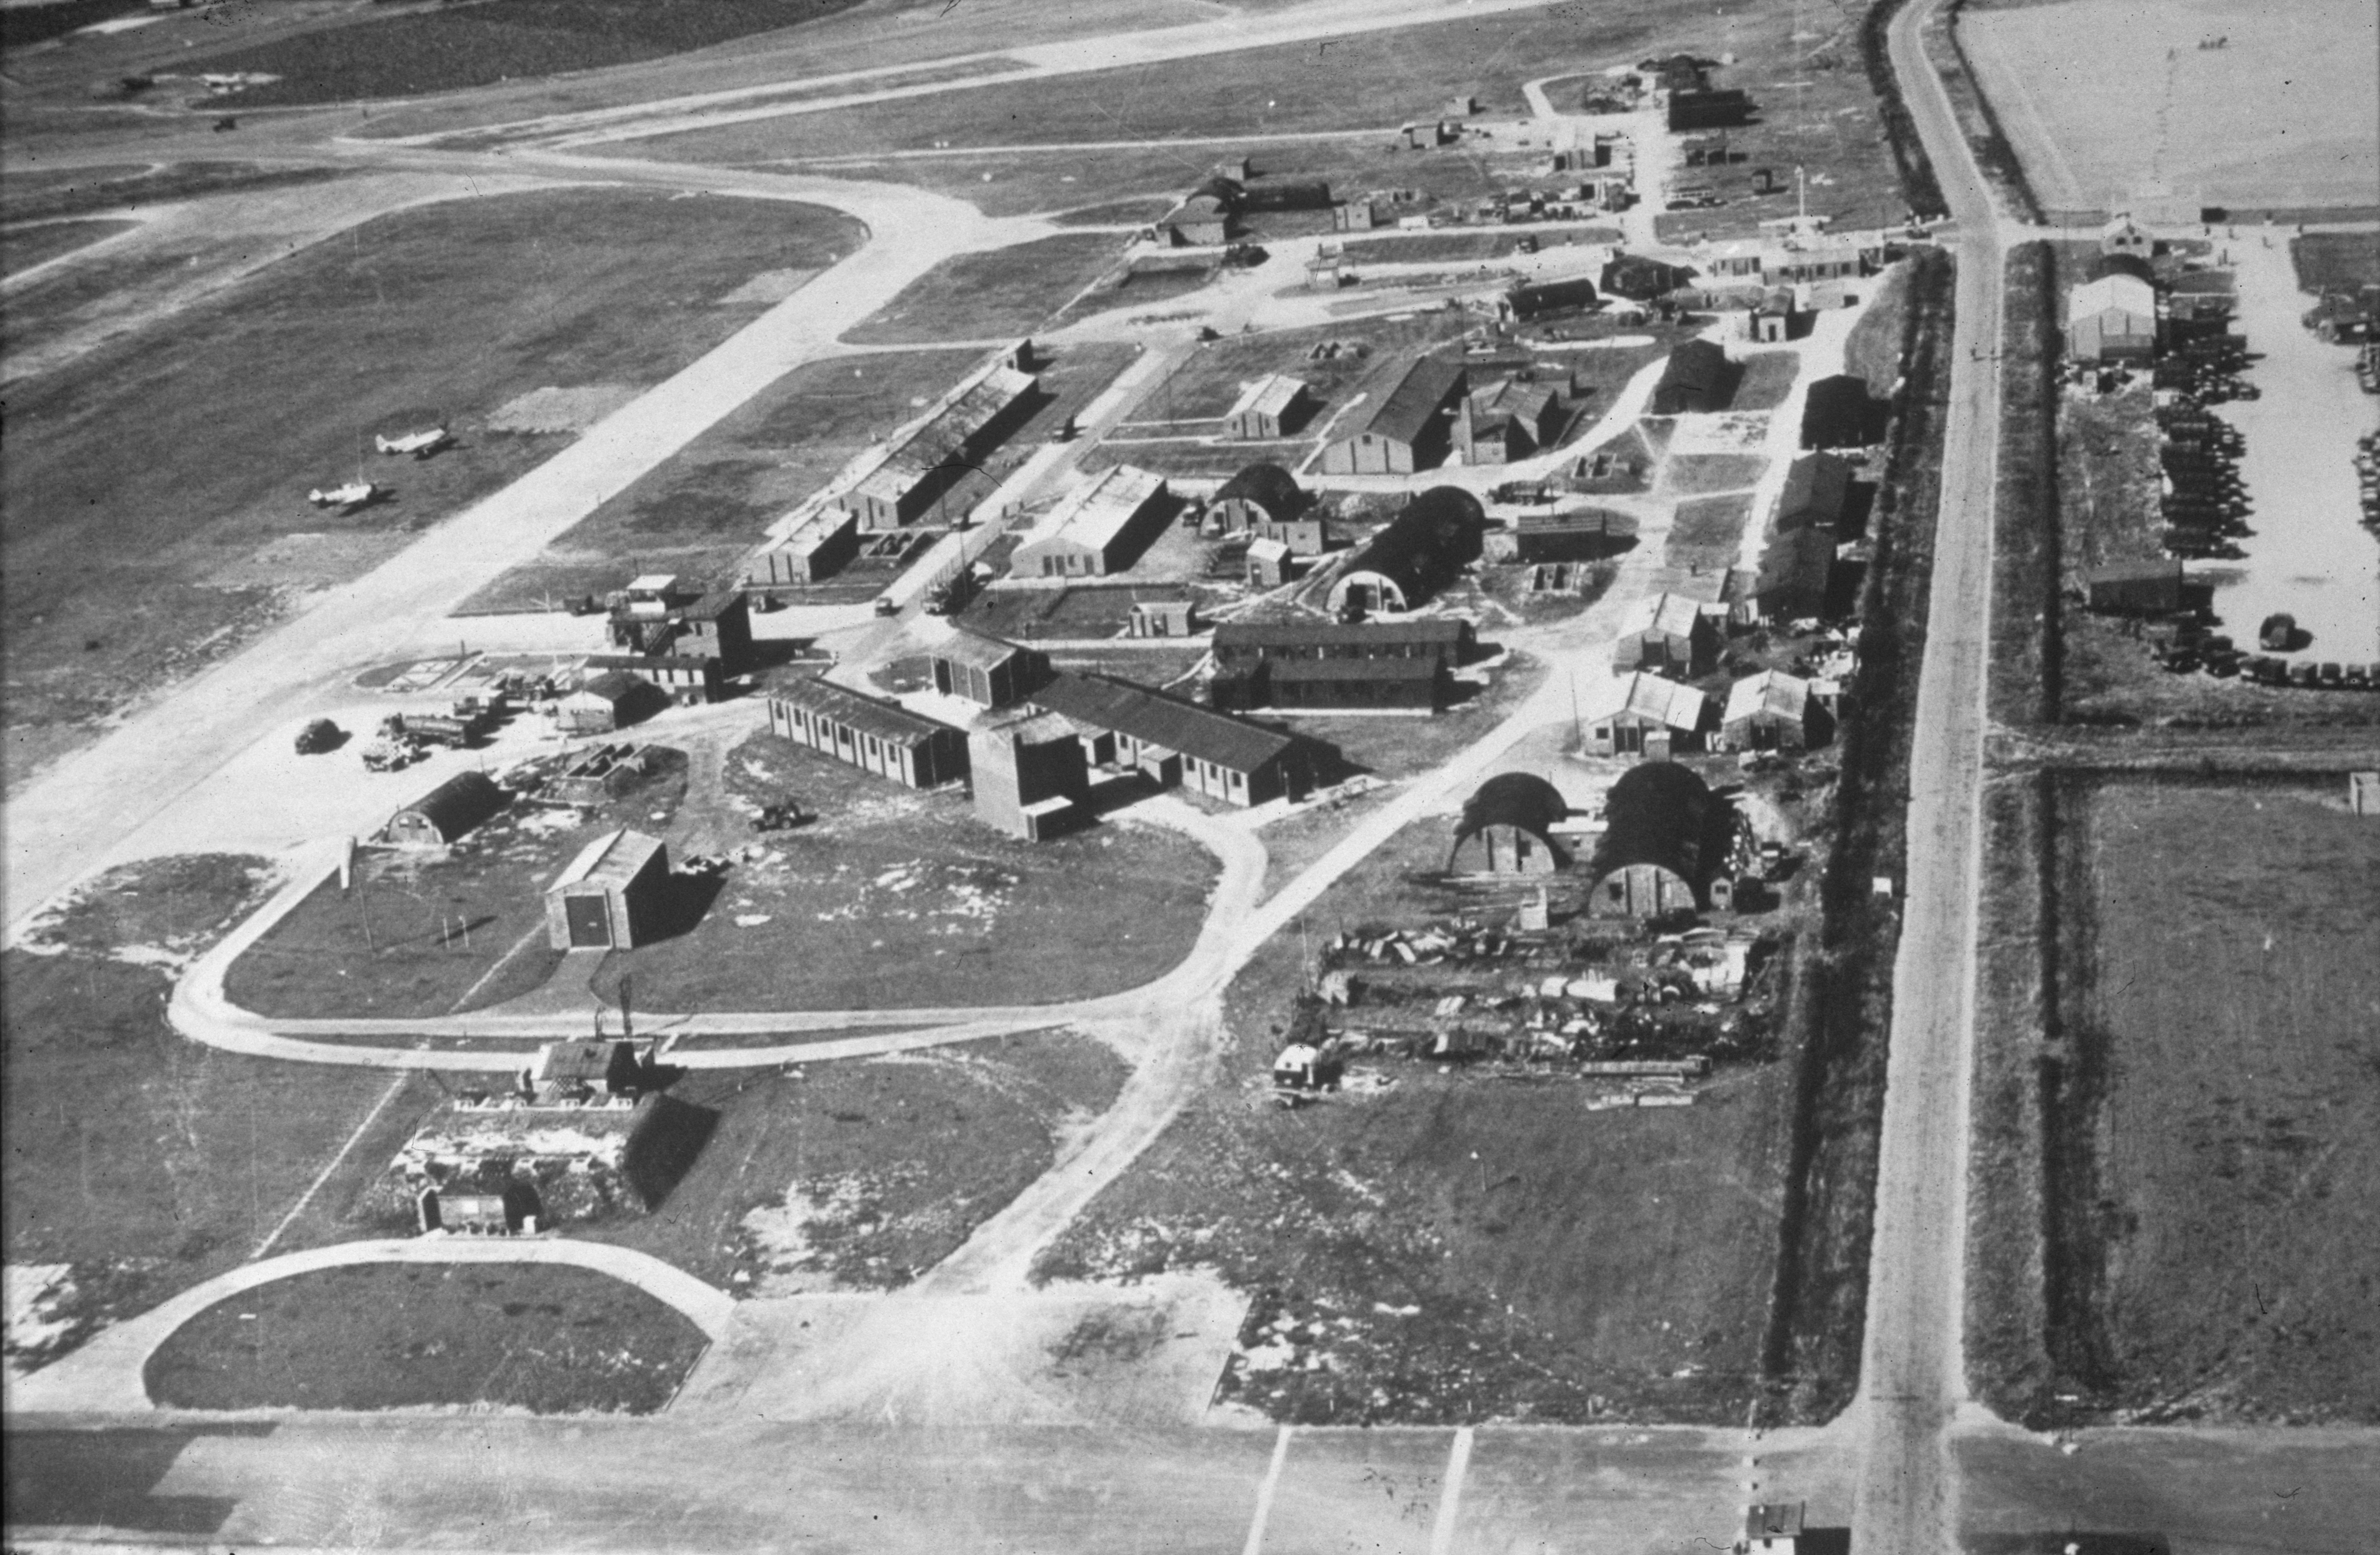 Airfield site c1944 © AAM FRE6297